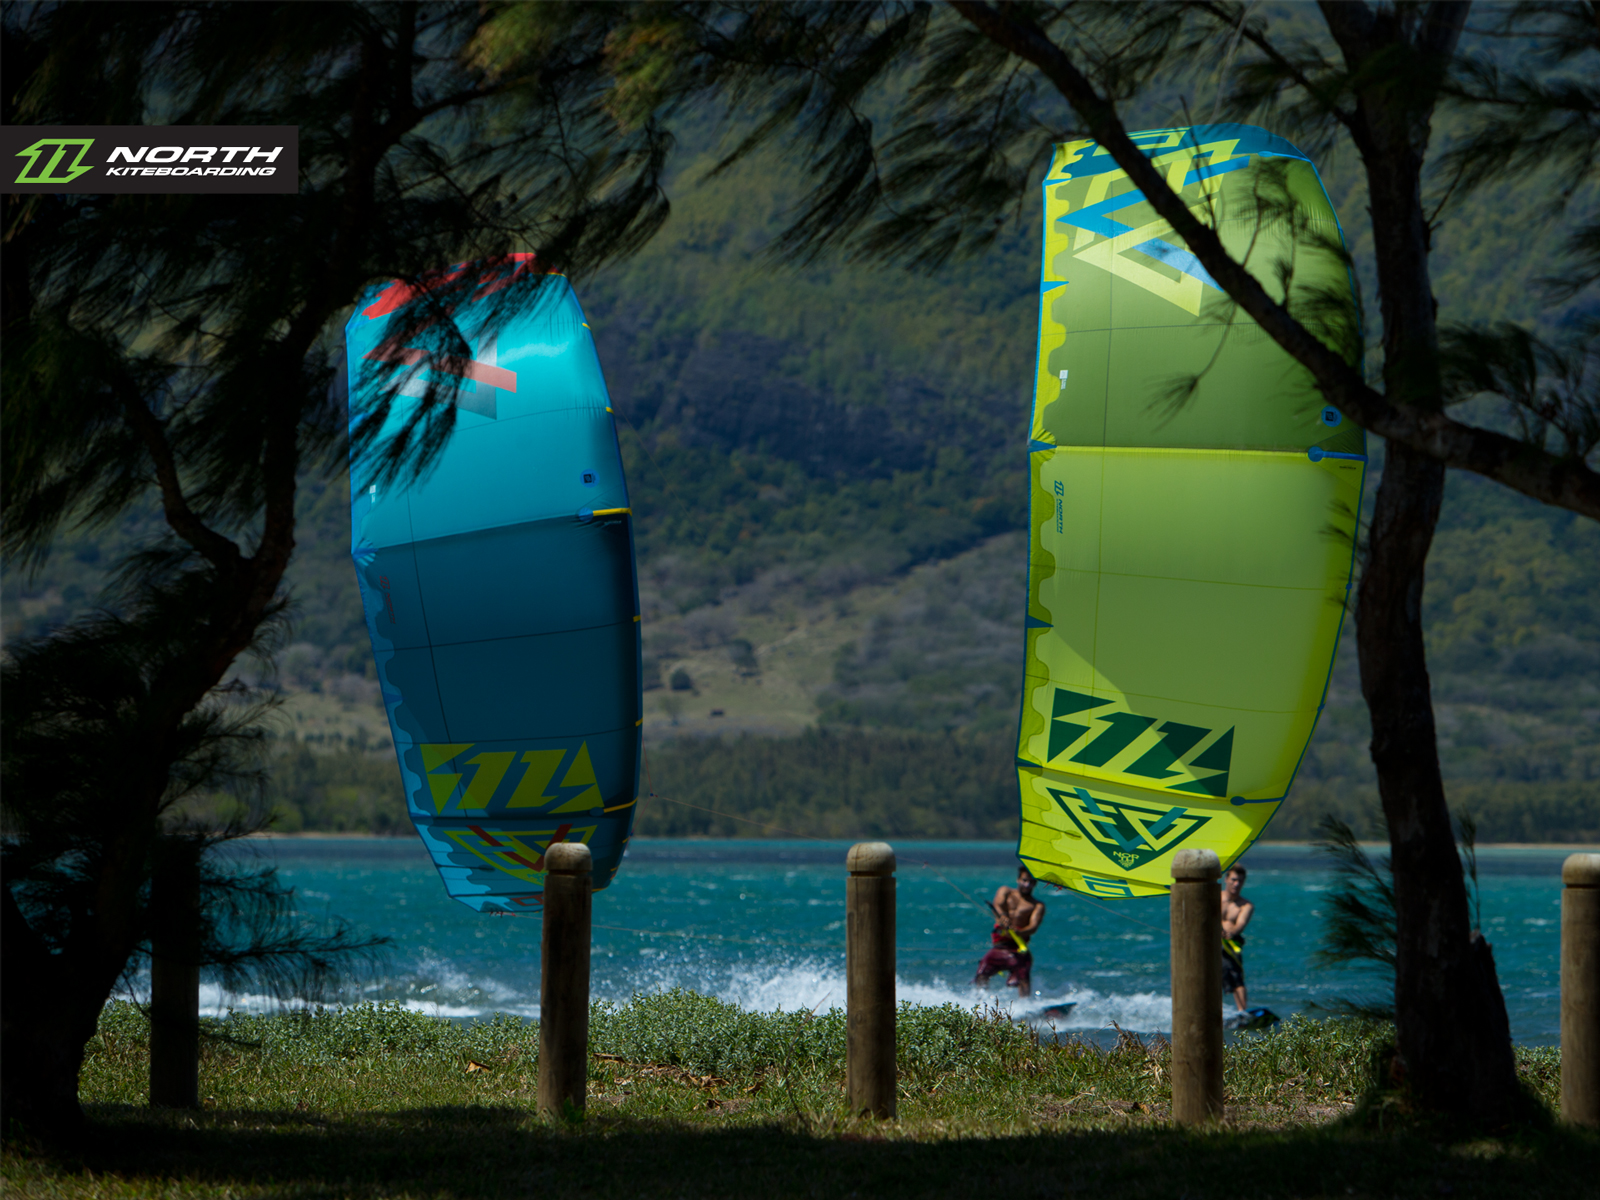 kitesurf wallpaper image - North Evo 2015 duo cruising between the trees - kitesurfing - in resolution: Standard 4:3 1600 X 1200